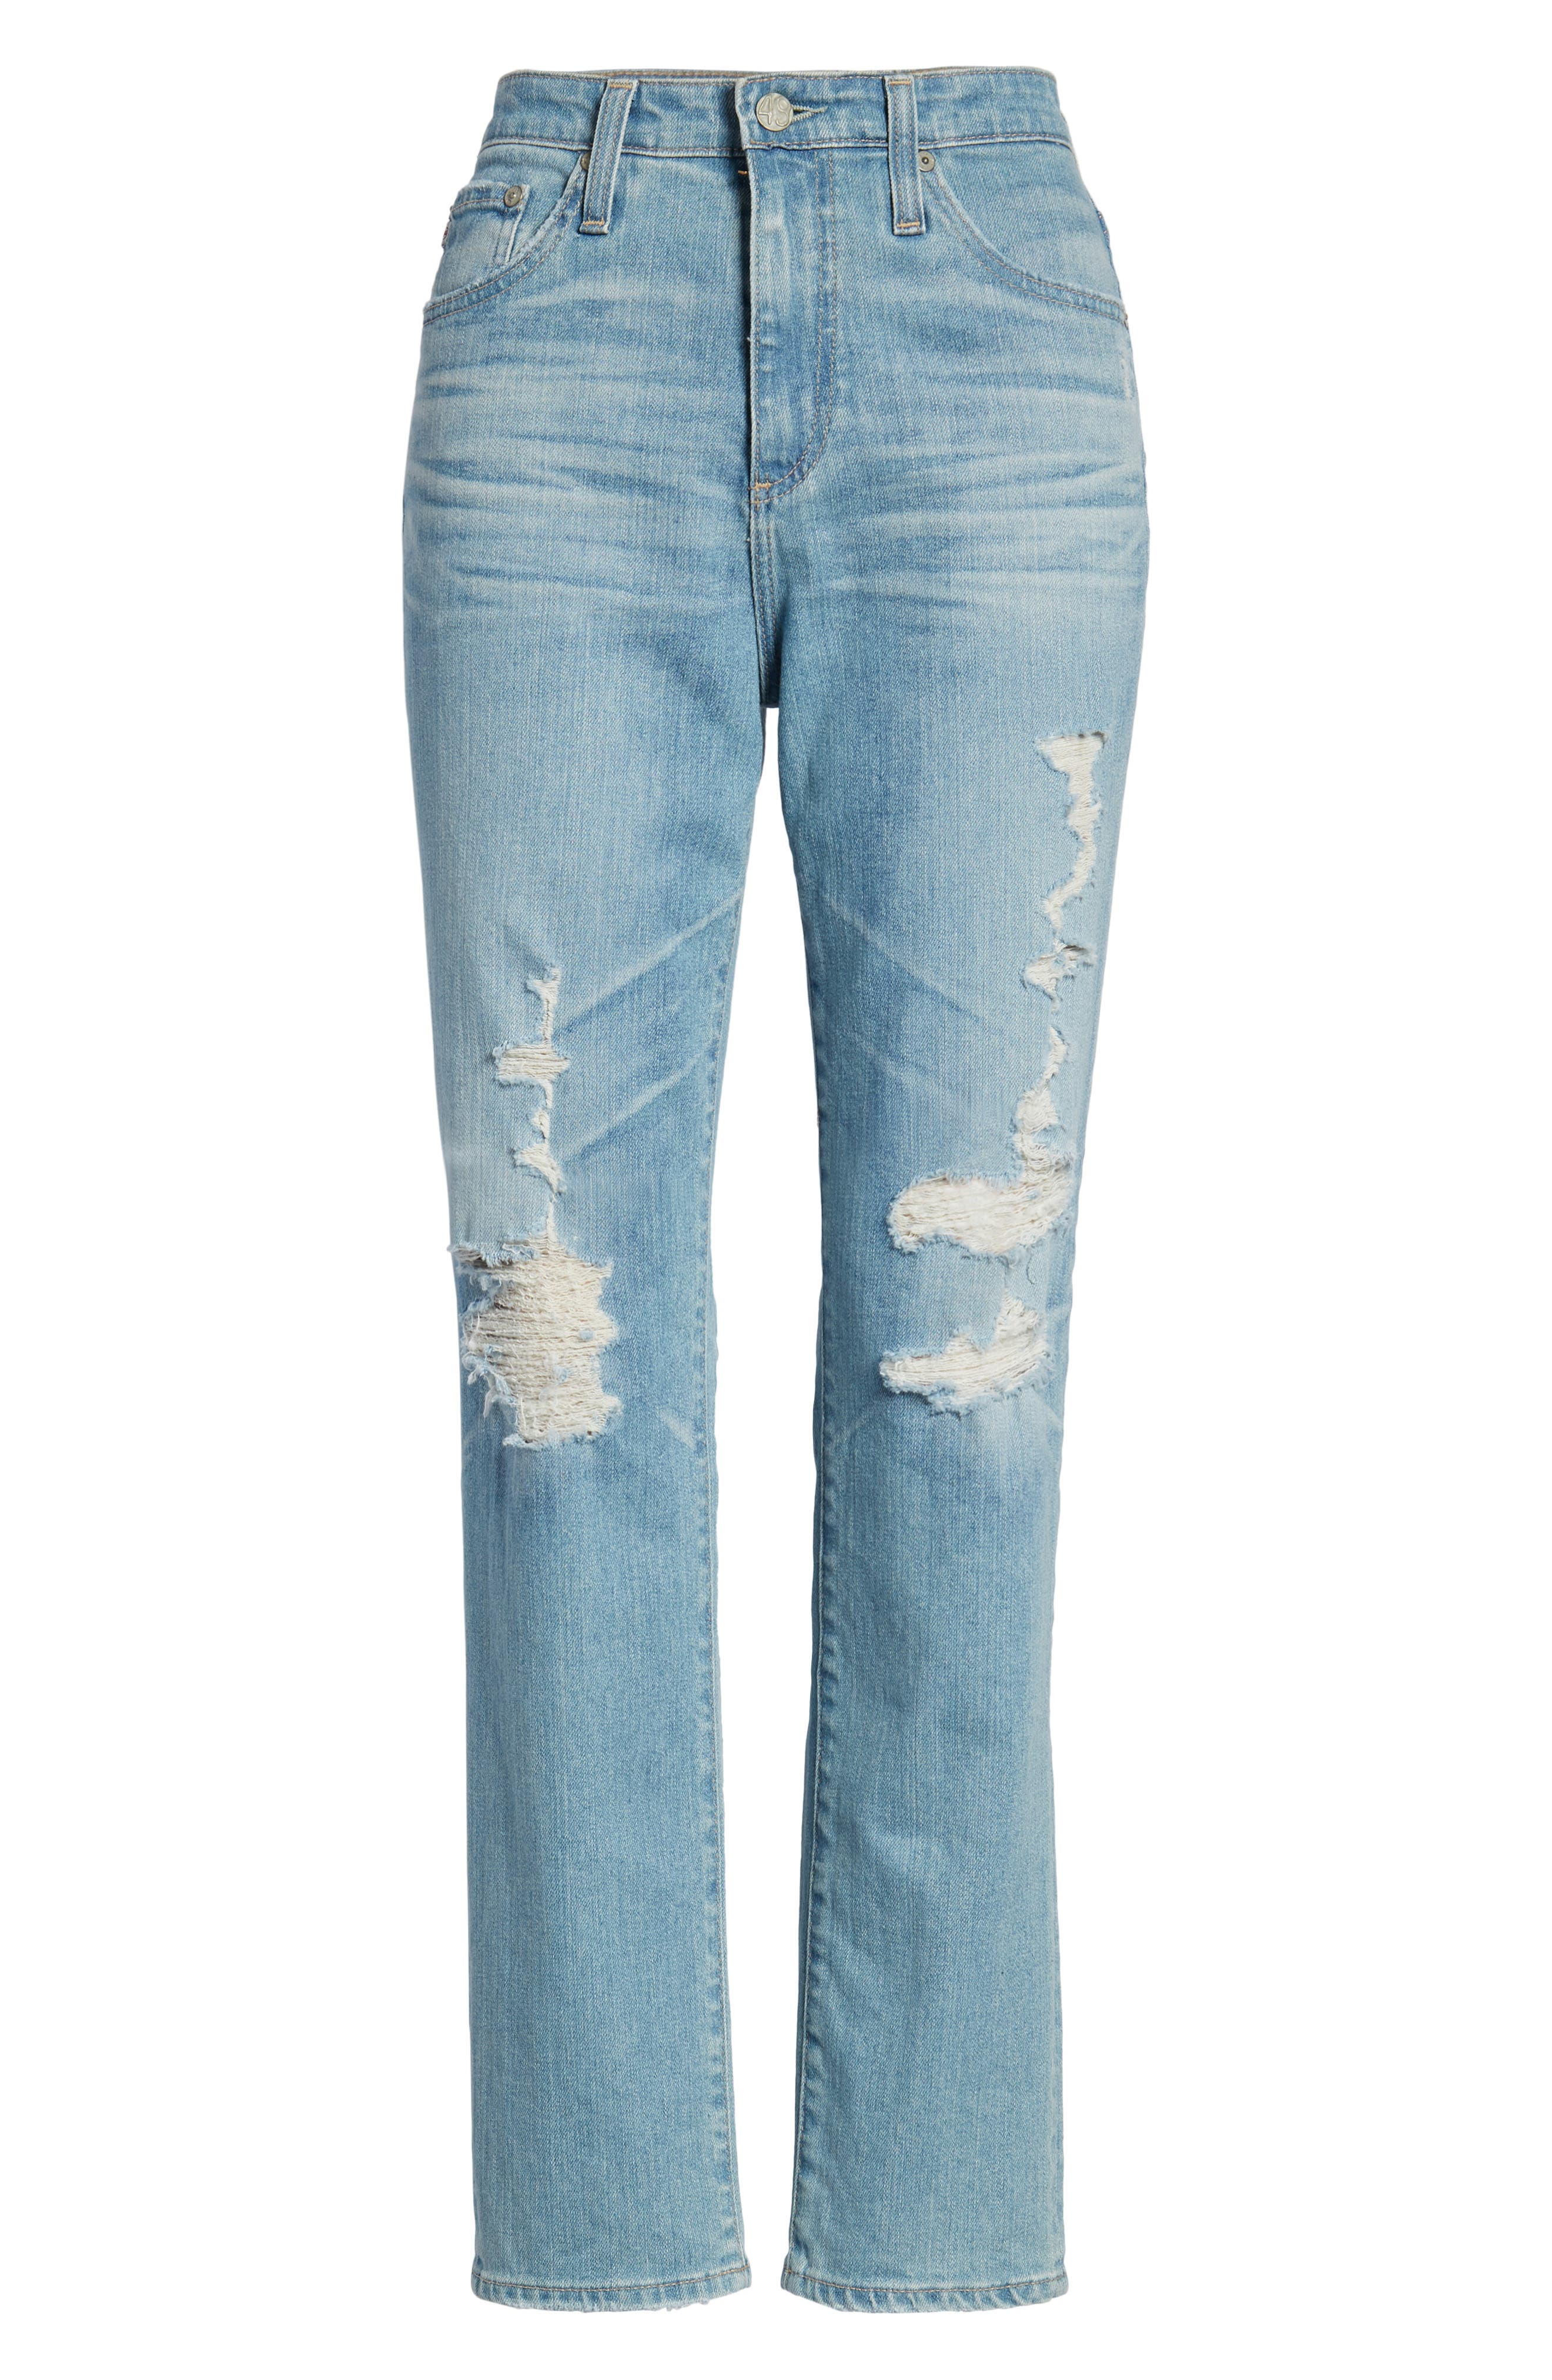 'The Phoebe' Vintage High Rise Straight Leg Jeans,                             Alternate thumbnail 7, color,                             18 Years Headlands